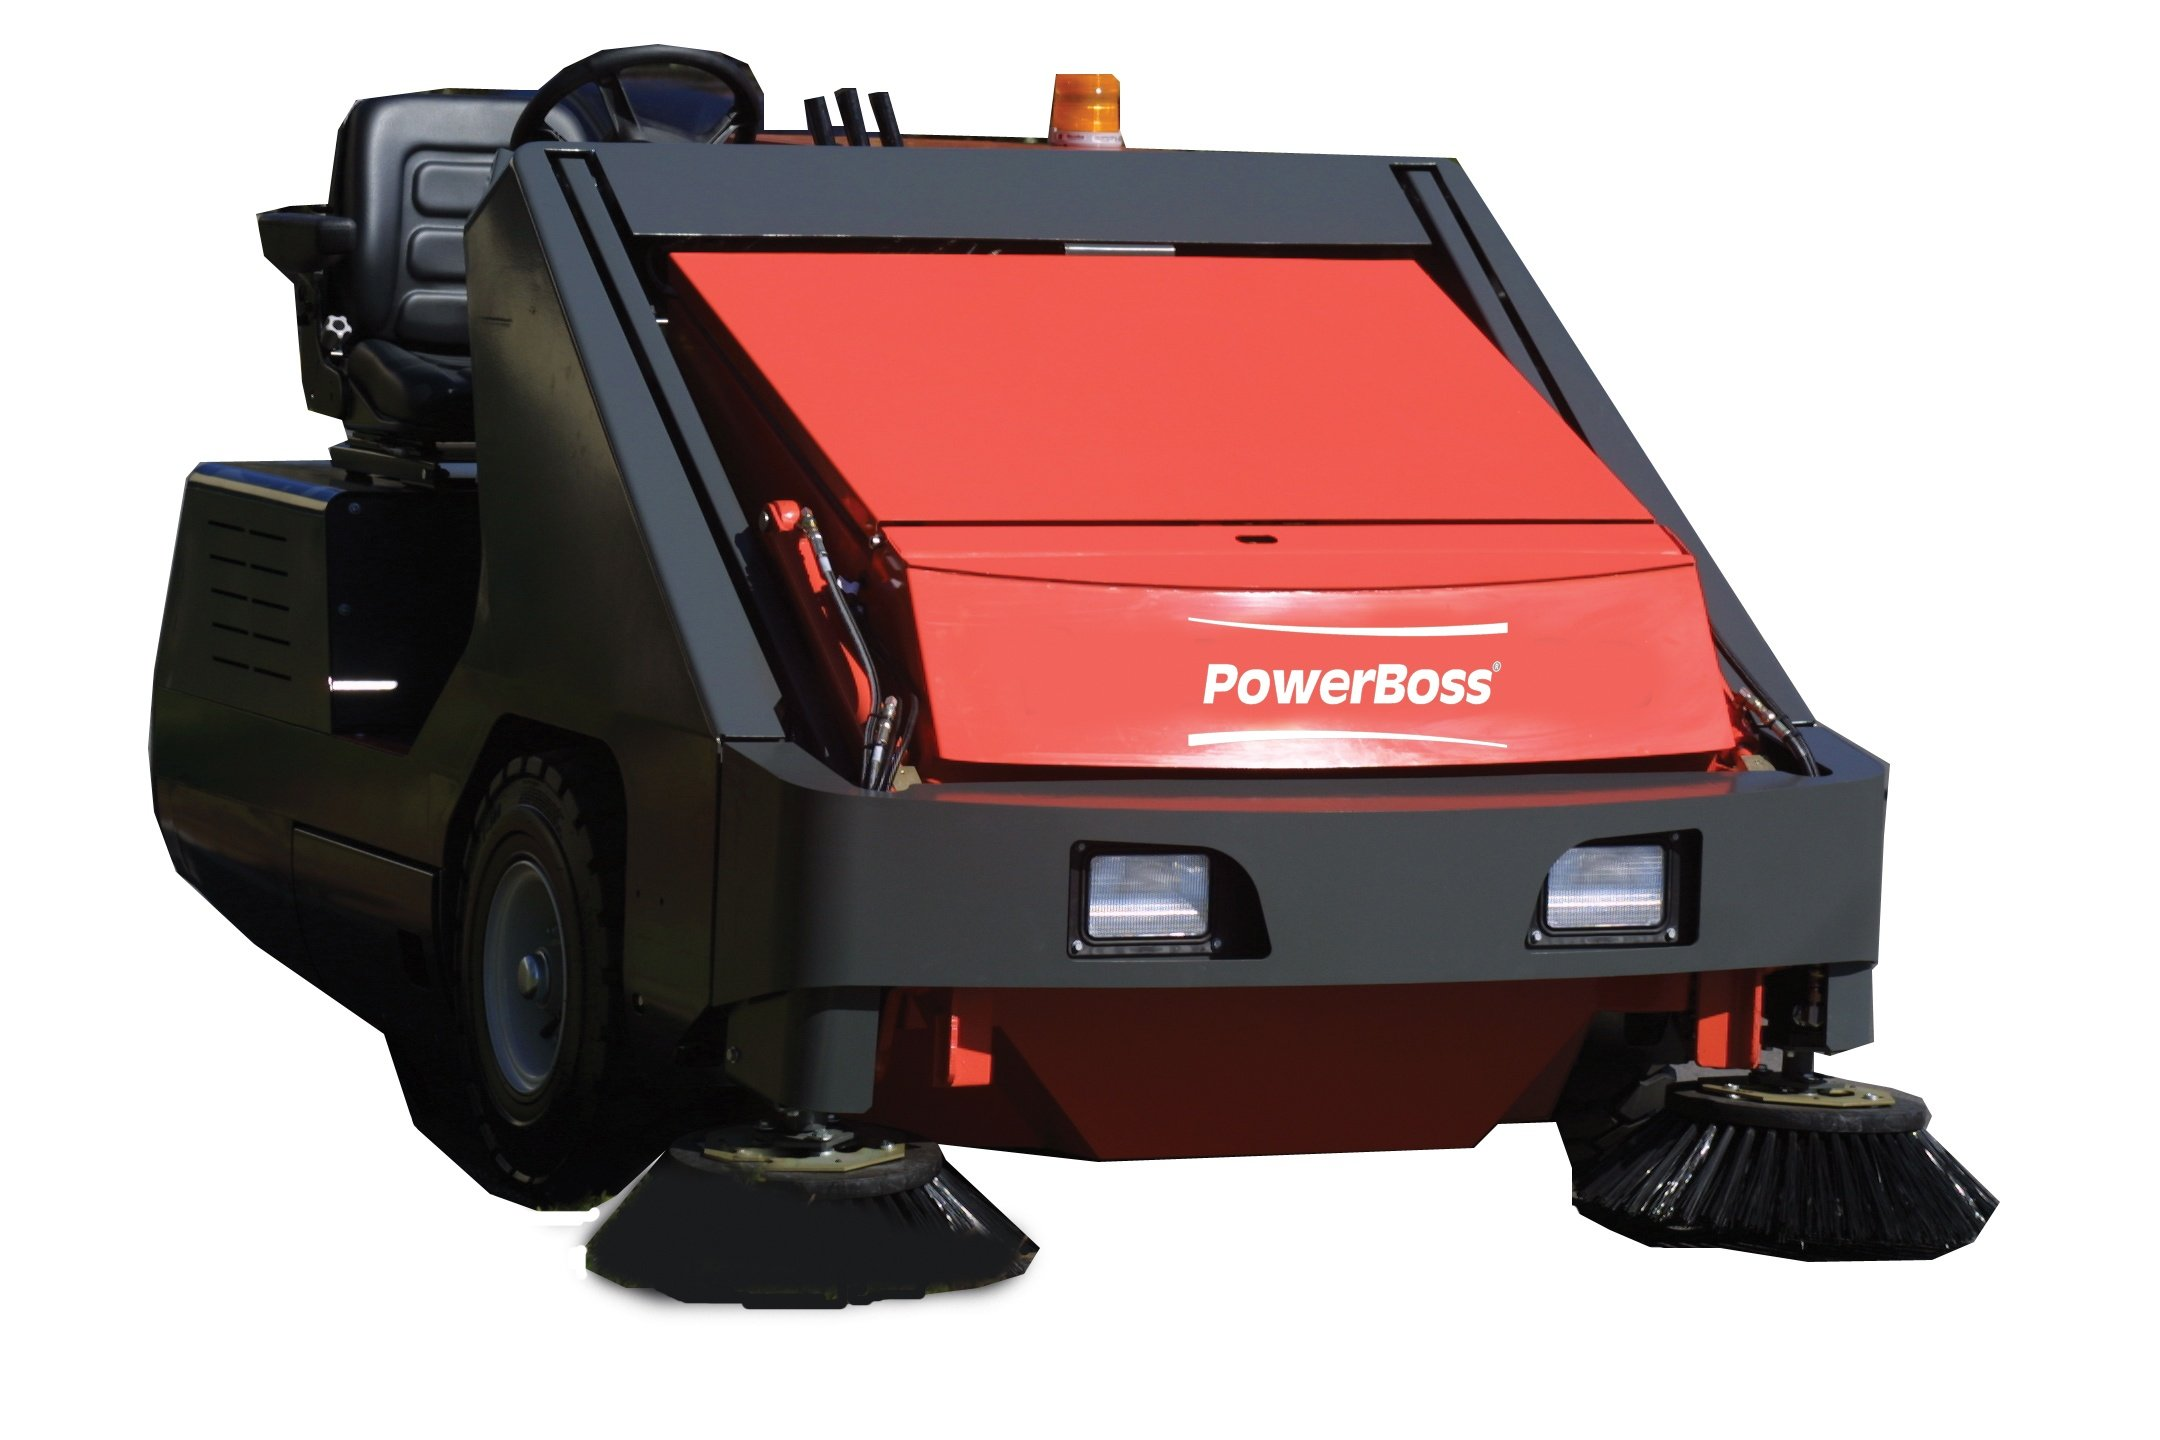 Powerboss 10X Industrial Floor Sweeper - Large